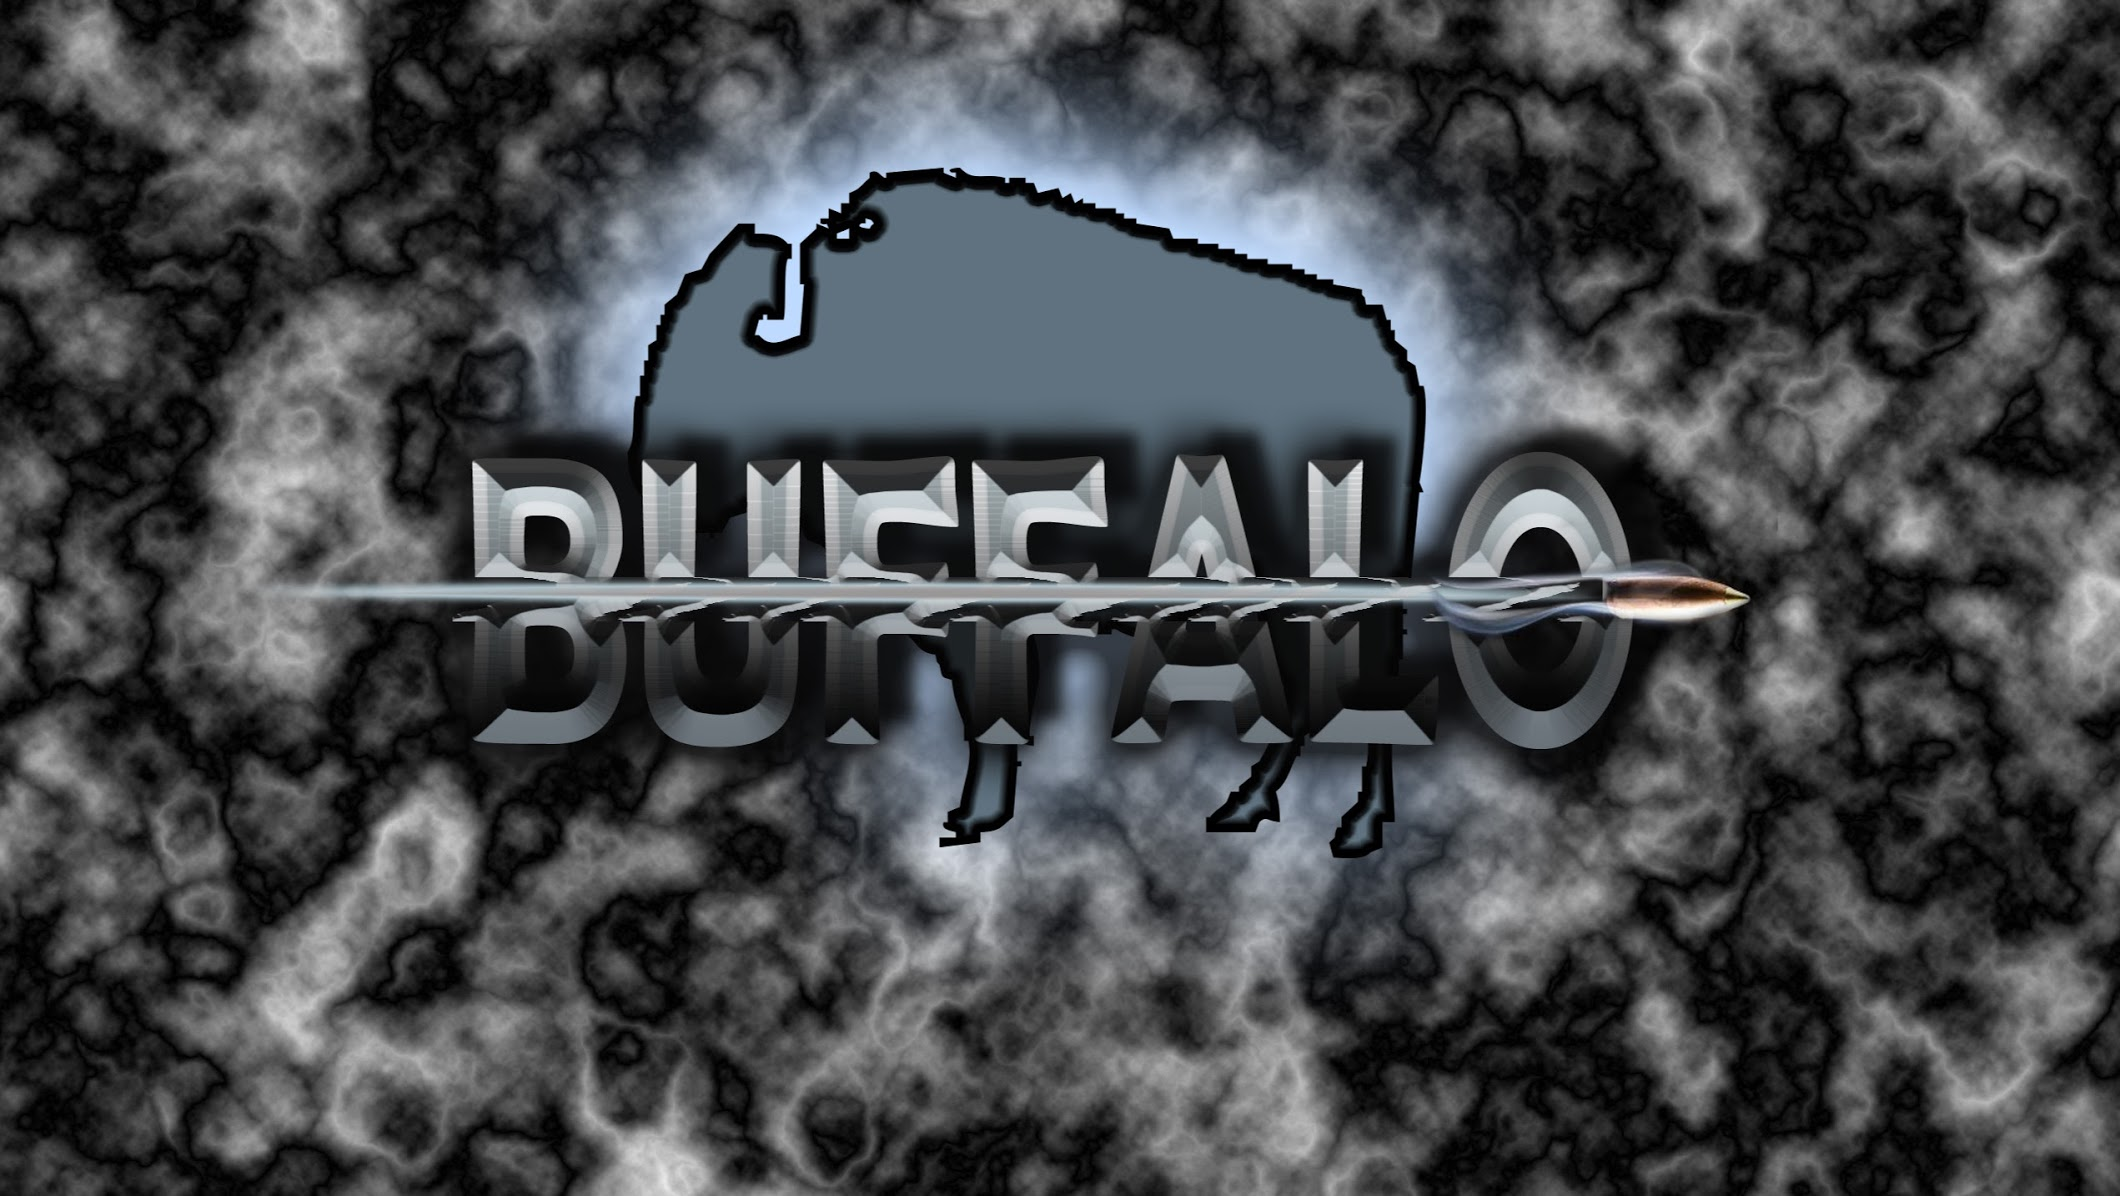 Buffalo's Outdoors 46